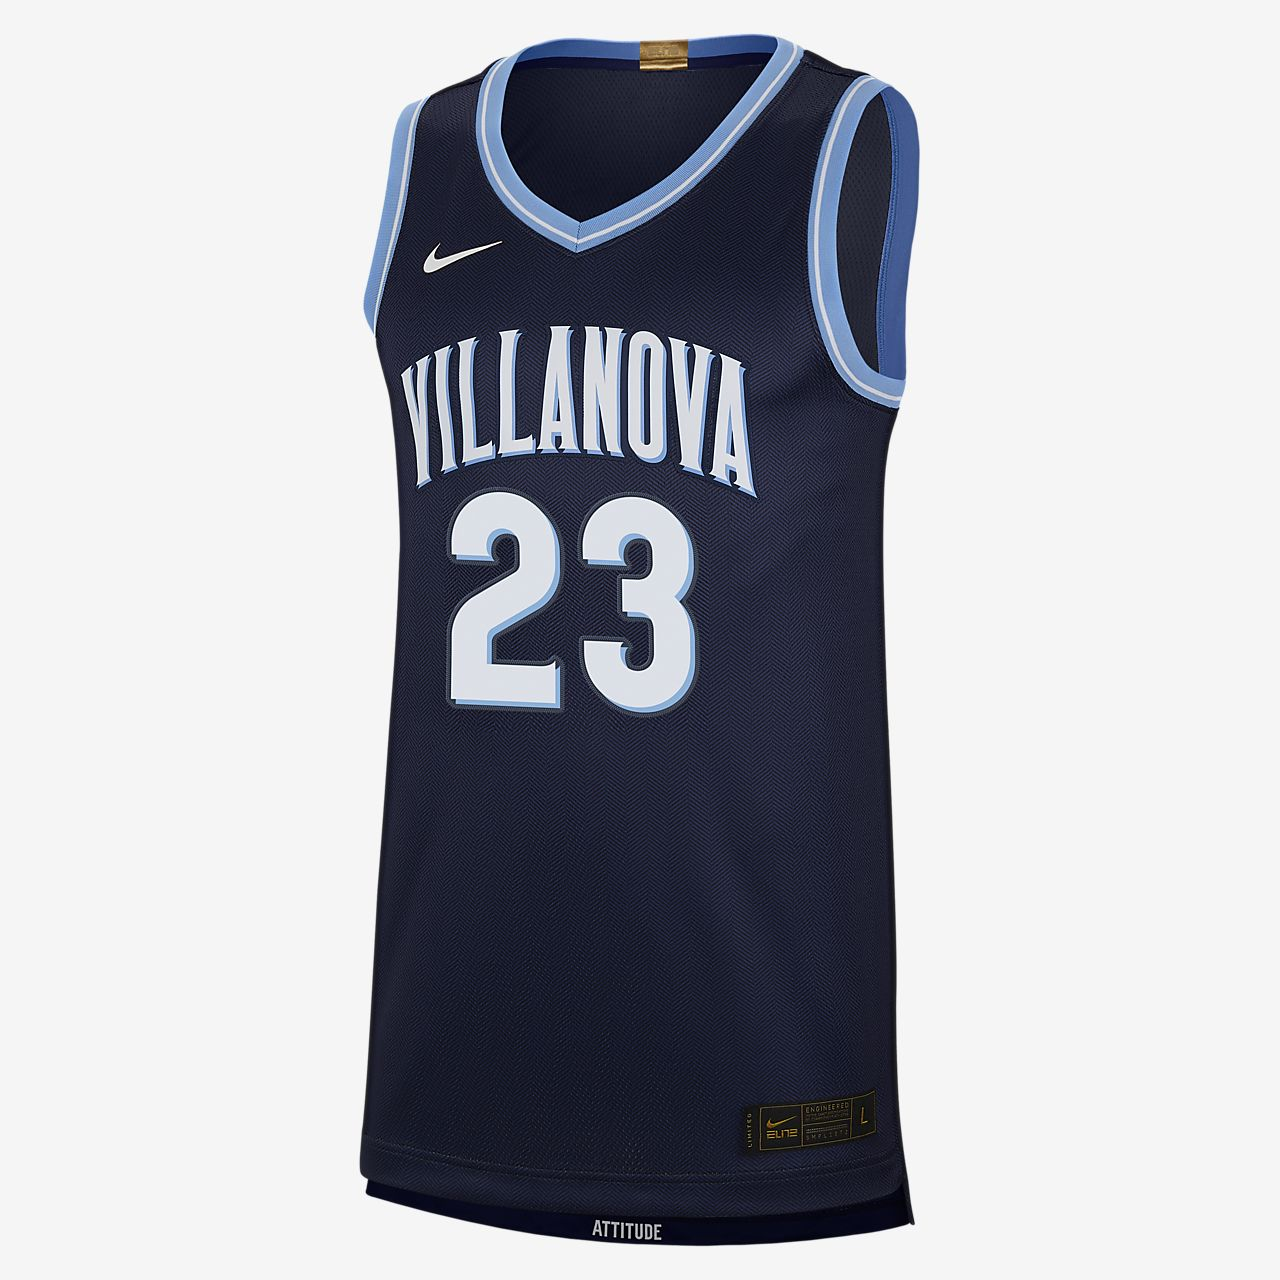 Nike College (Villanova) Men's Limited Basketball Jersey